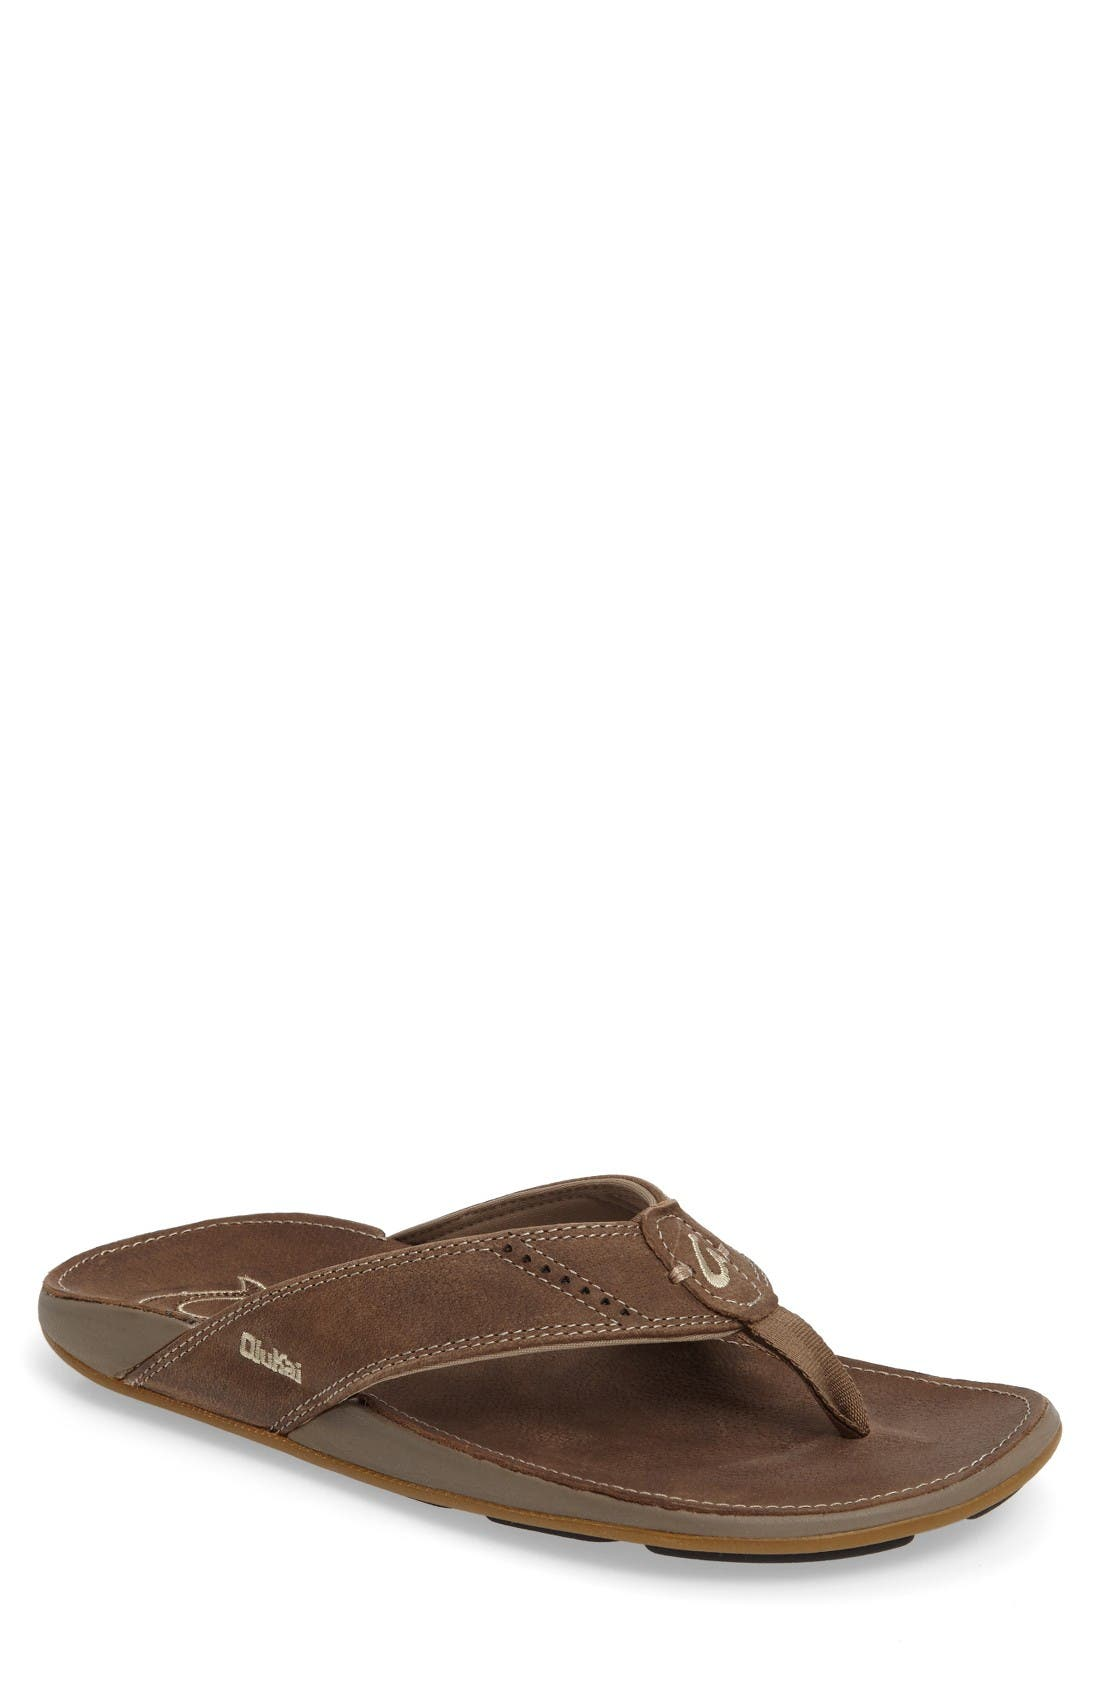 OluKai 'Nui' Leather Flip Flop (Men)